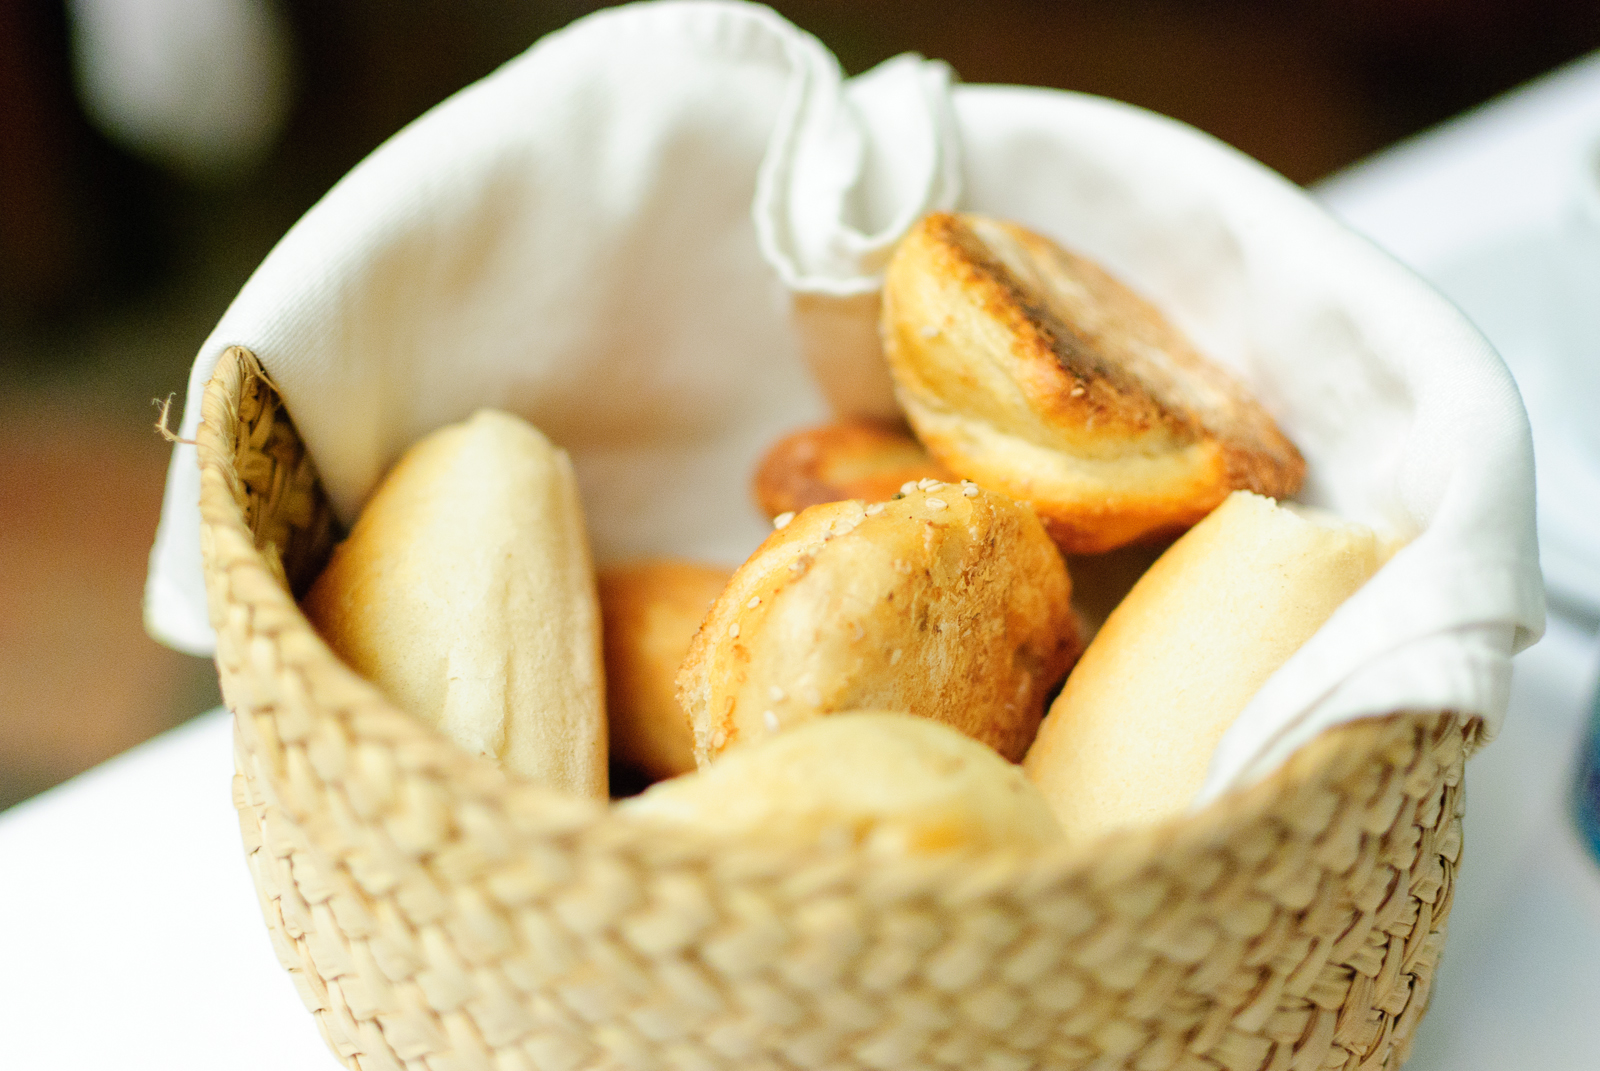 Bread basket - sesame and local wheat